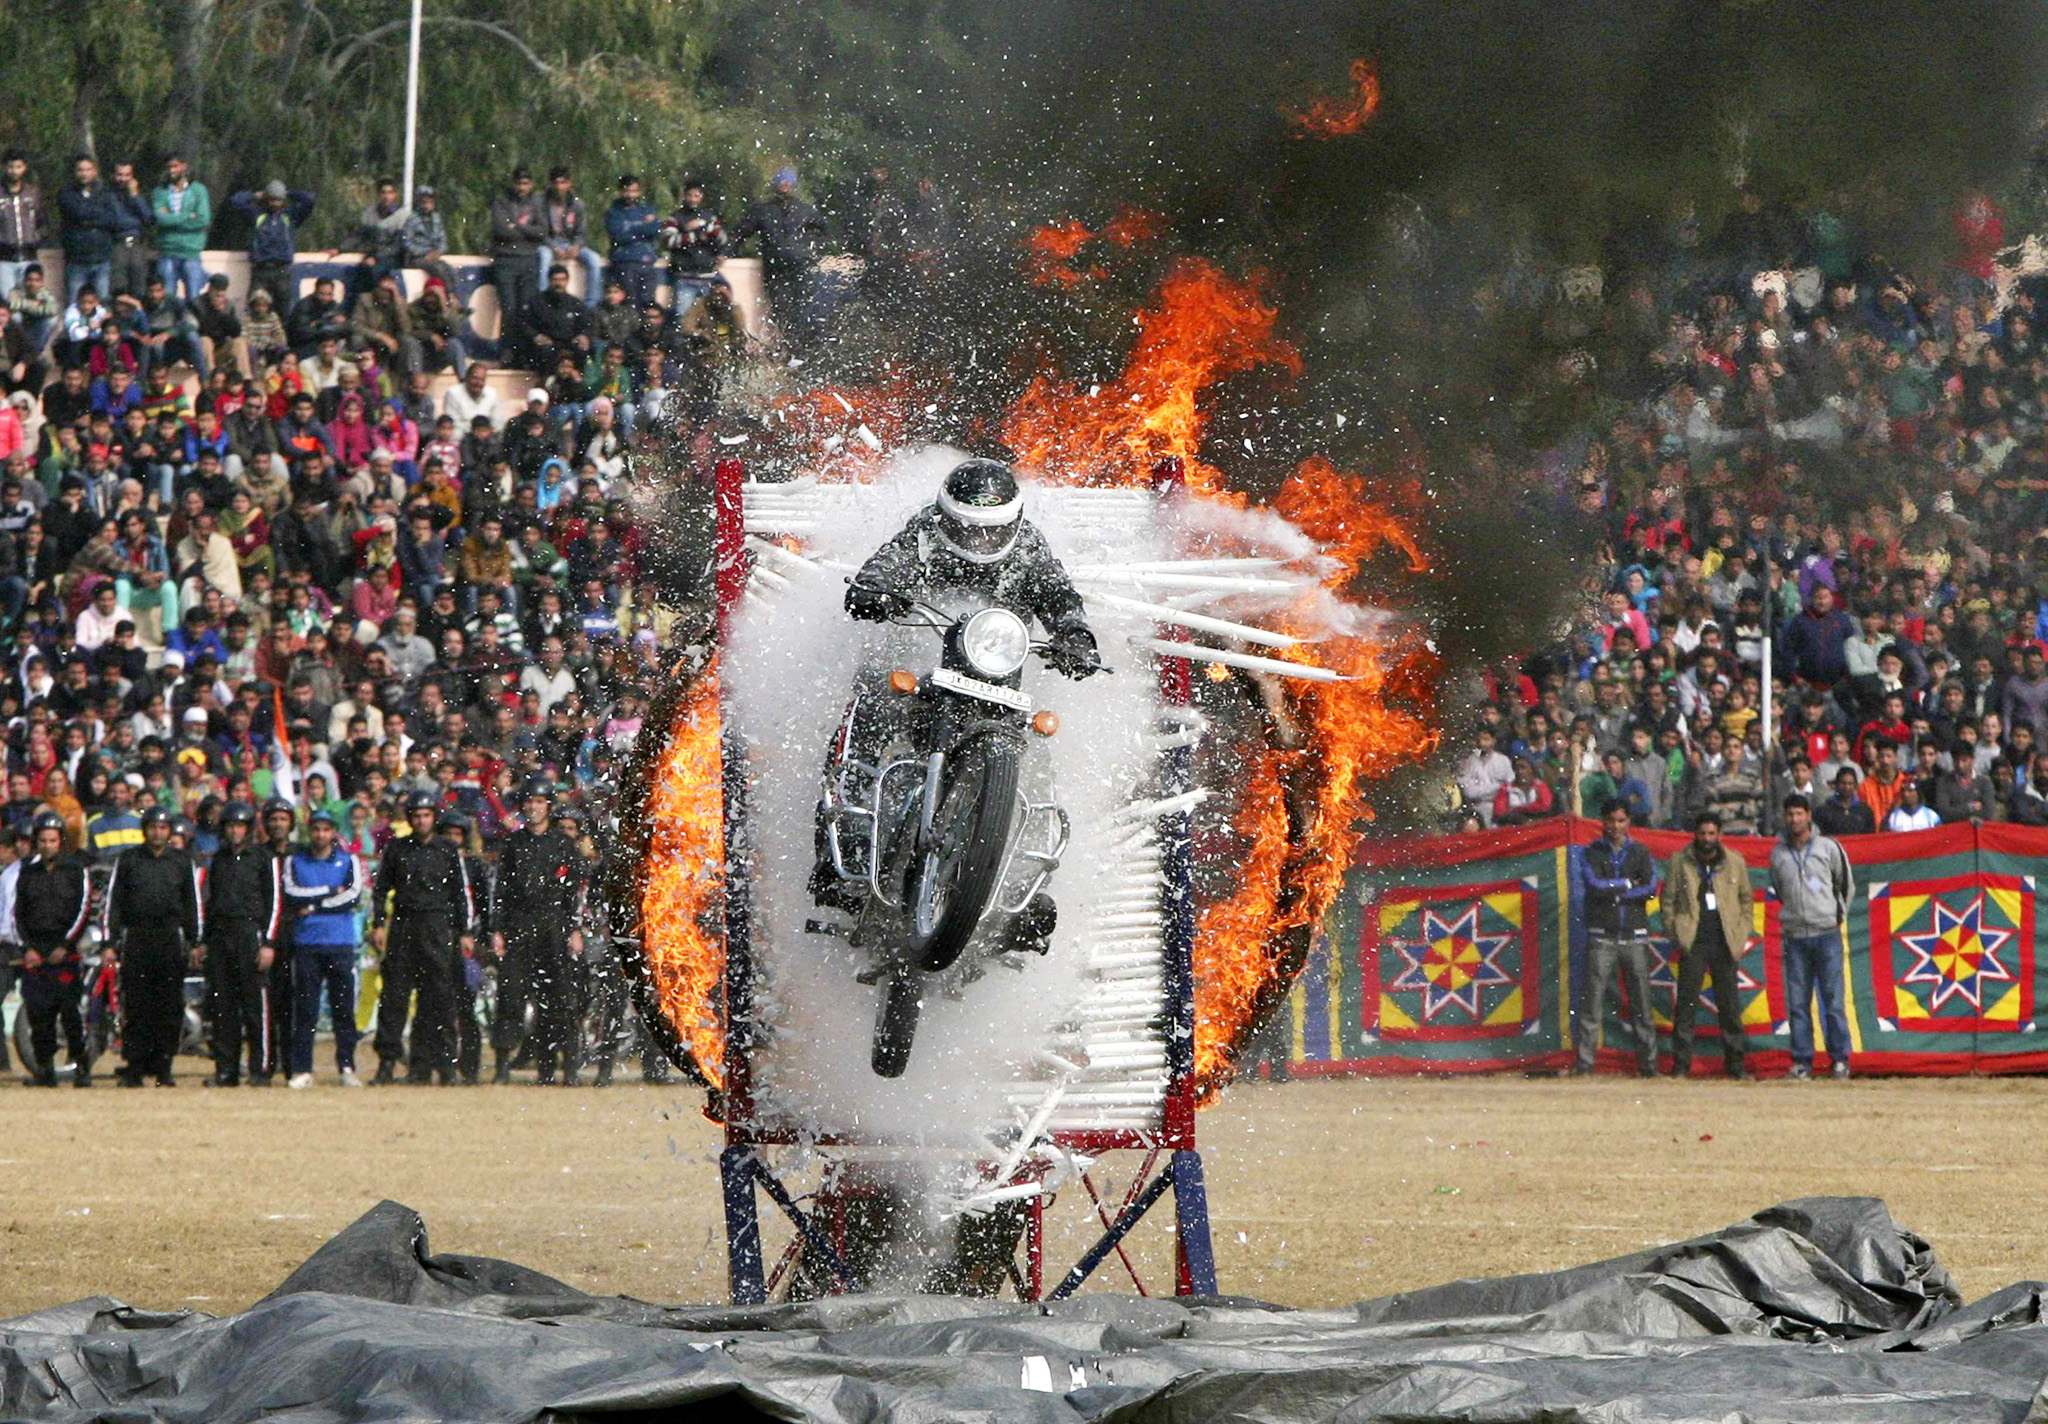 Indian policeman performs a stunt on motorcycle during the Republic Day parade in Jammu...An Indian policeman performs a stunt on his motorcycle during the Republic Day parade in Jammu January 26, 2015. India celebrated its 66th Republic Day on Monday. REUTERS/Mukesh Gupta